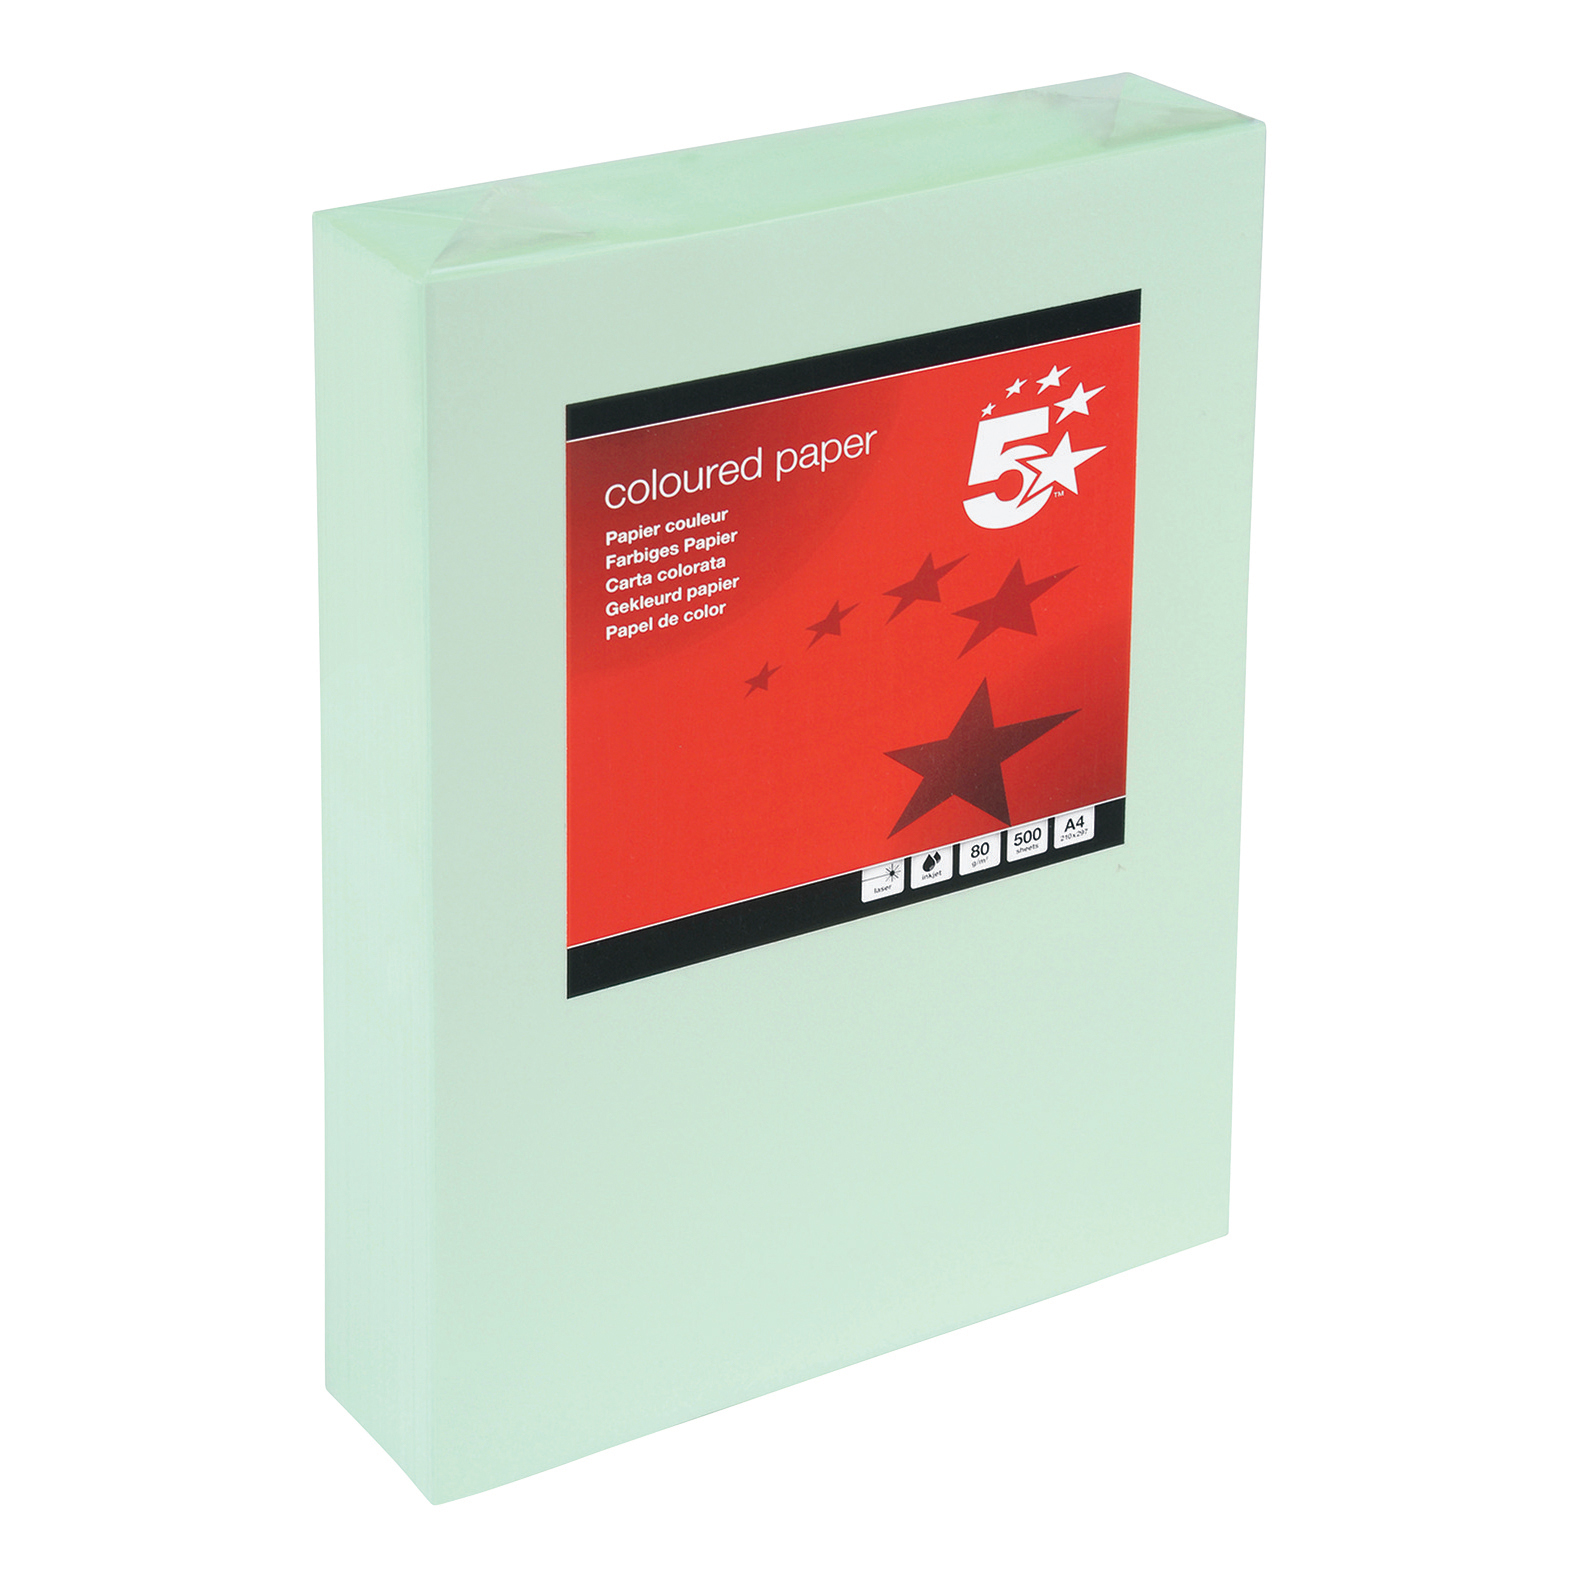 A4 5 Star Office Coloured Copier Paper Multifunctional Ream-Wrapped 80gsm A4 Light Green [500 Sheets]